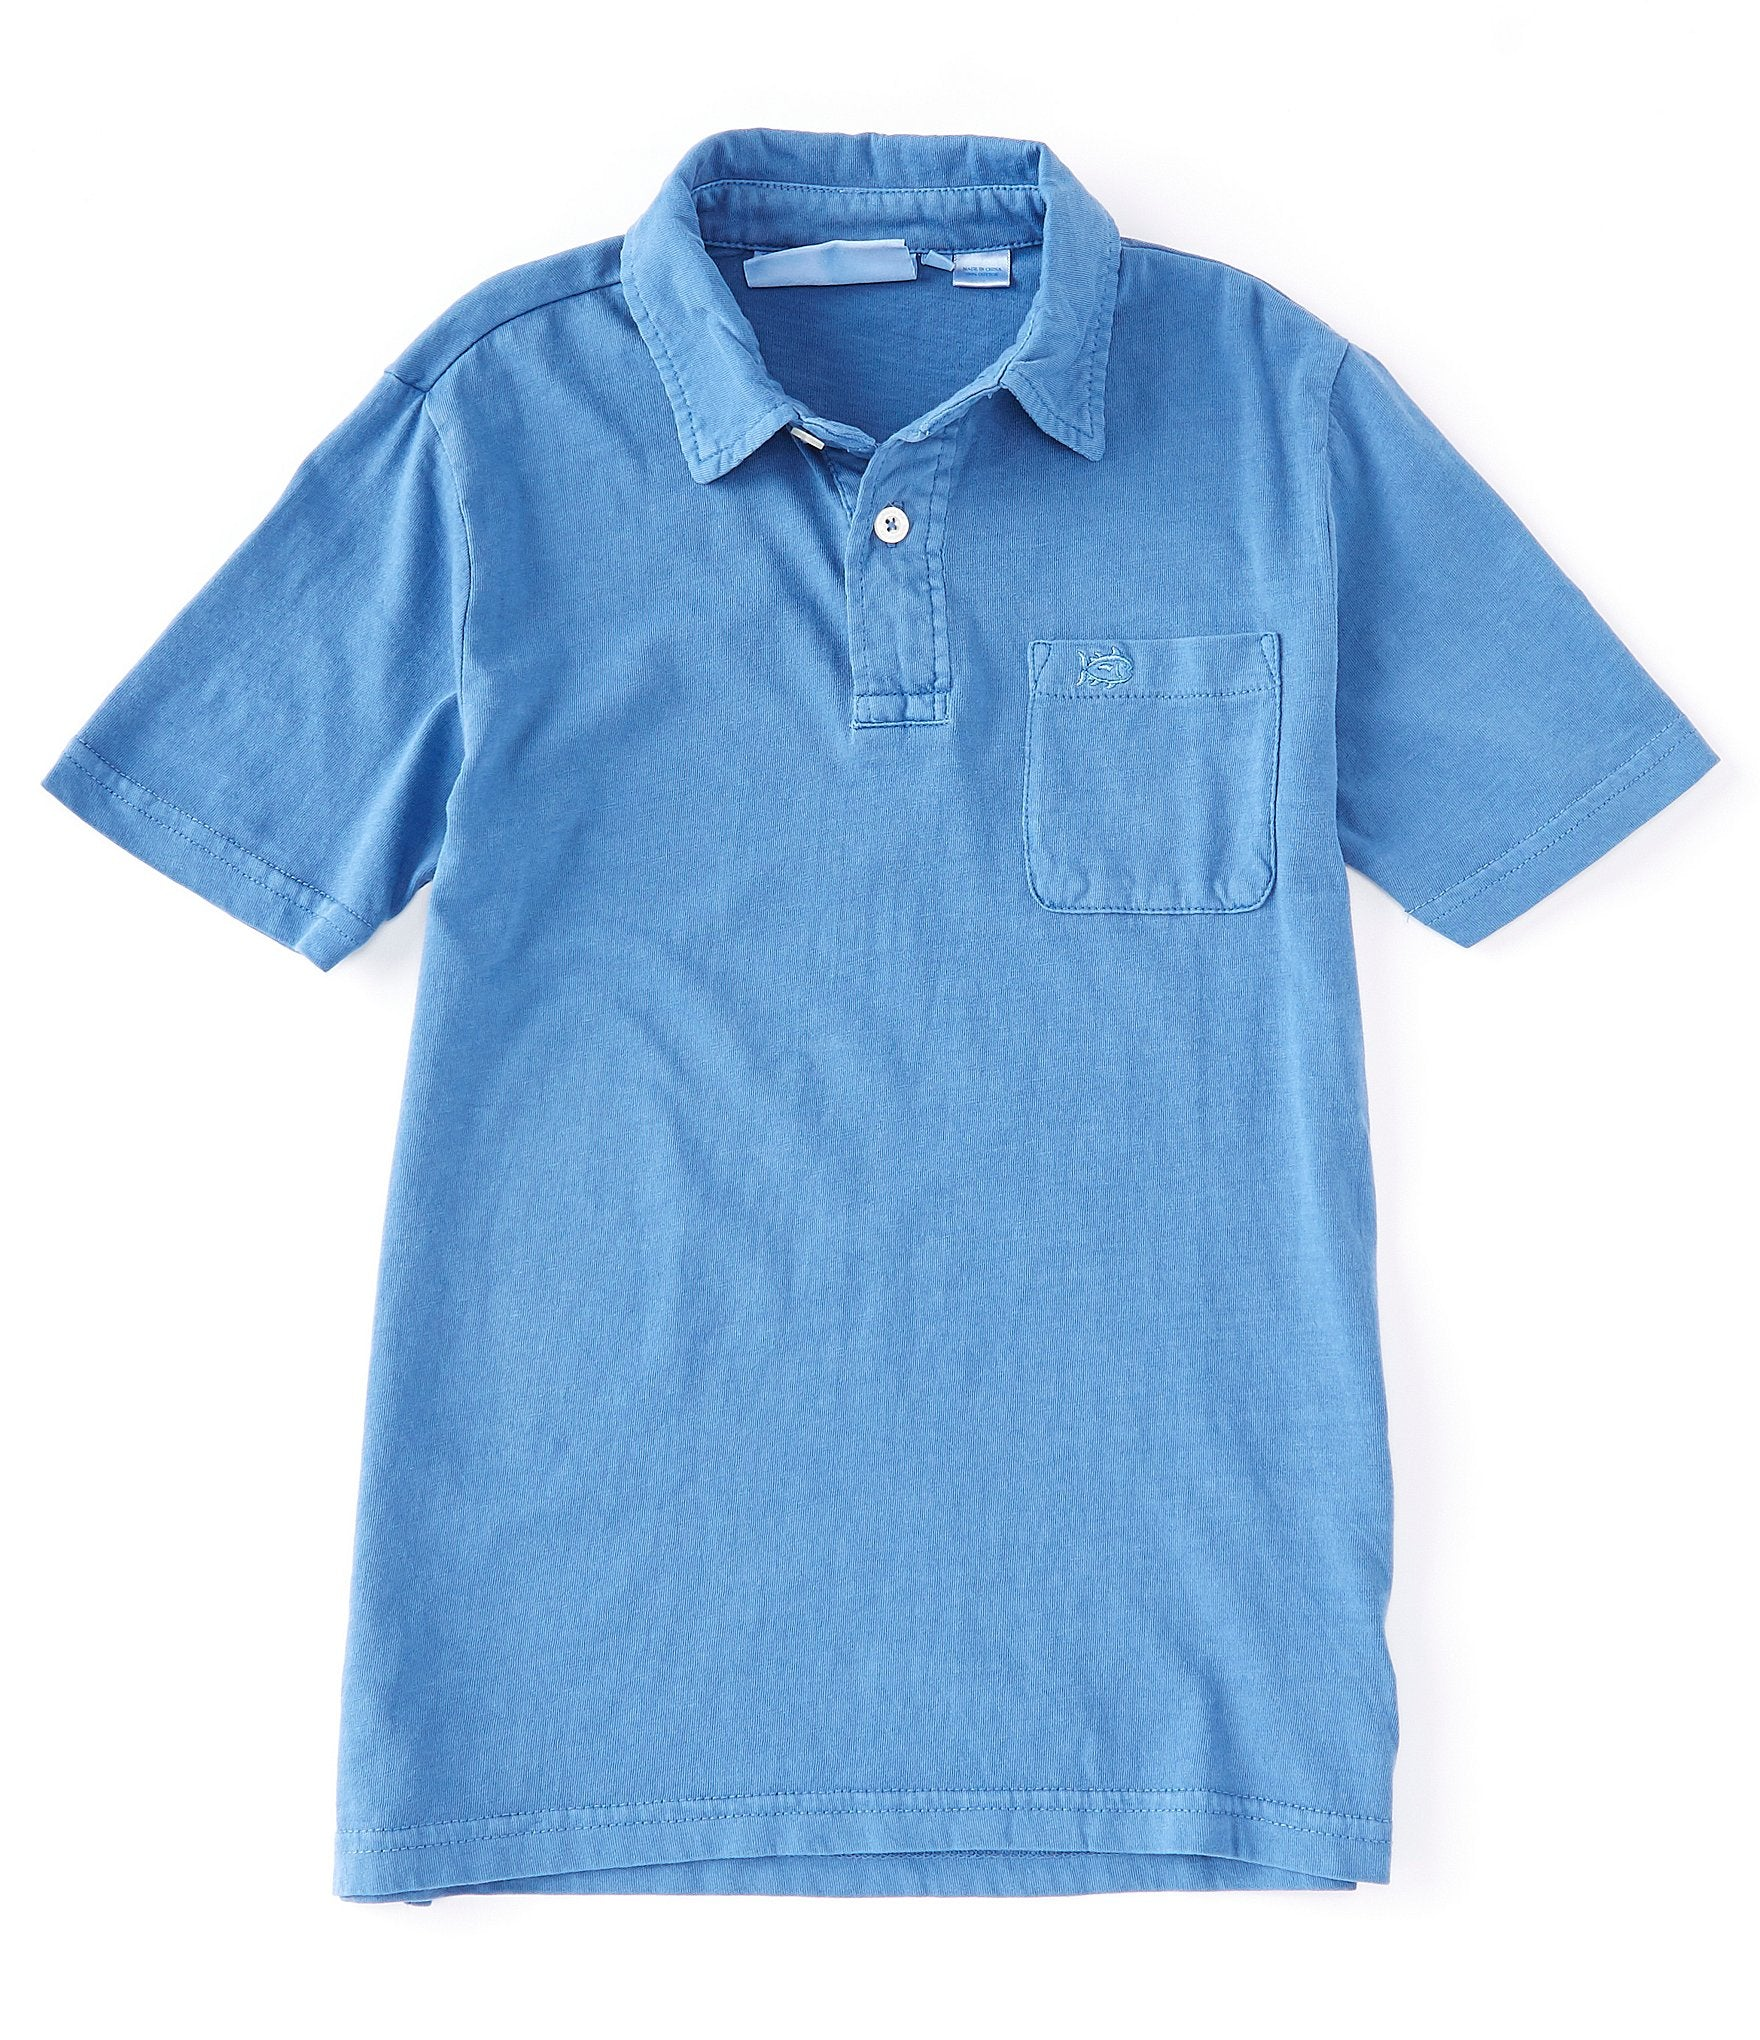 M S/S Island Road Jersey Polo